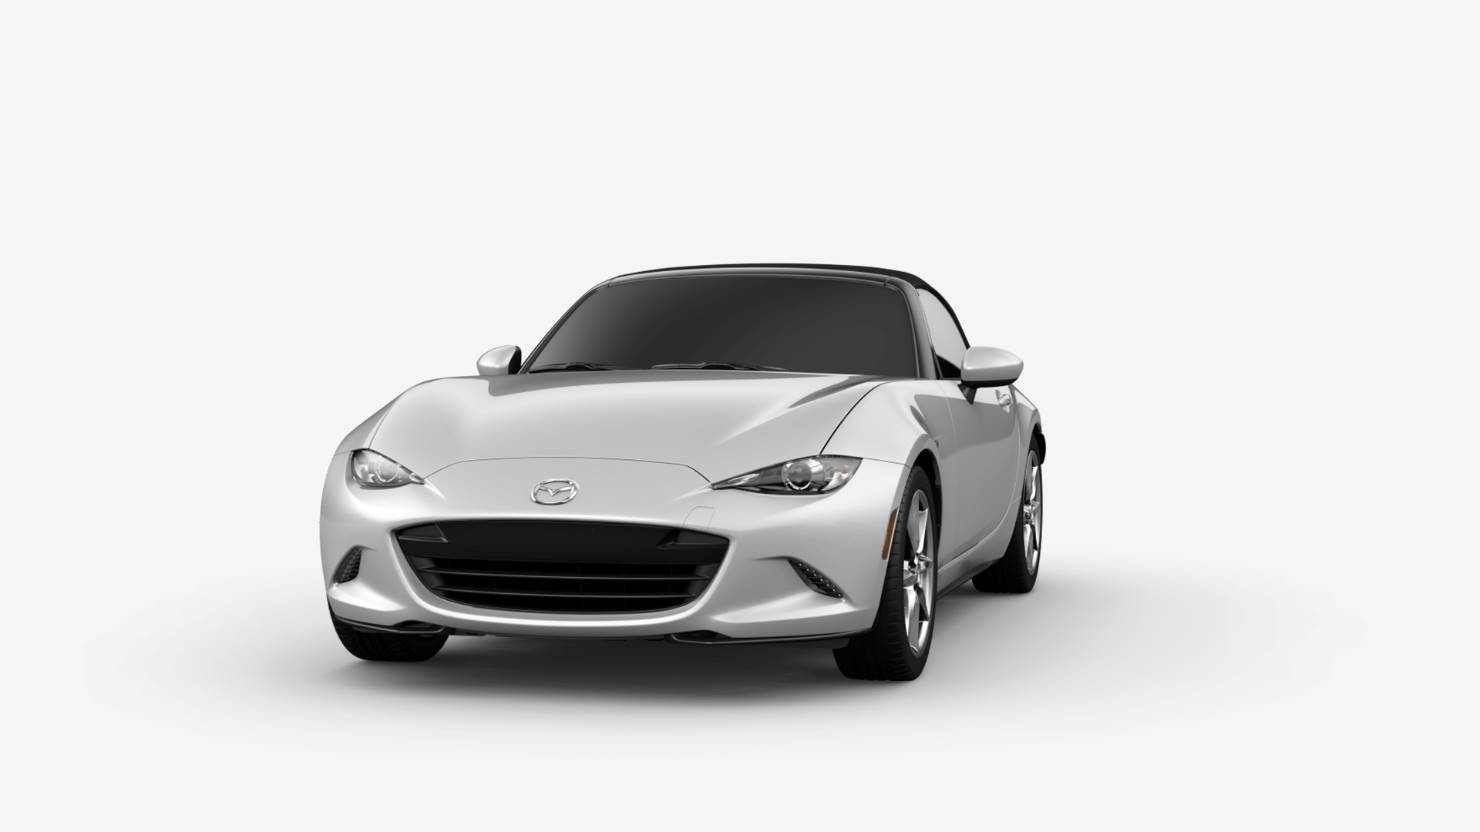 2019 Mazda MX-5 Miata Ceramic Metallic